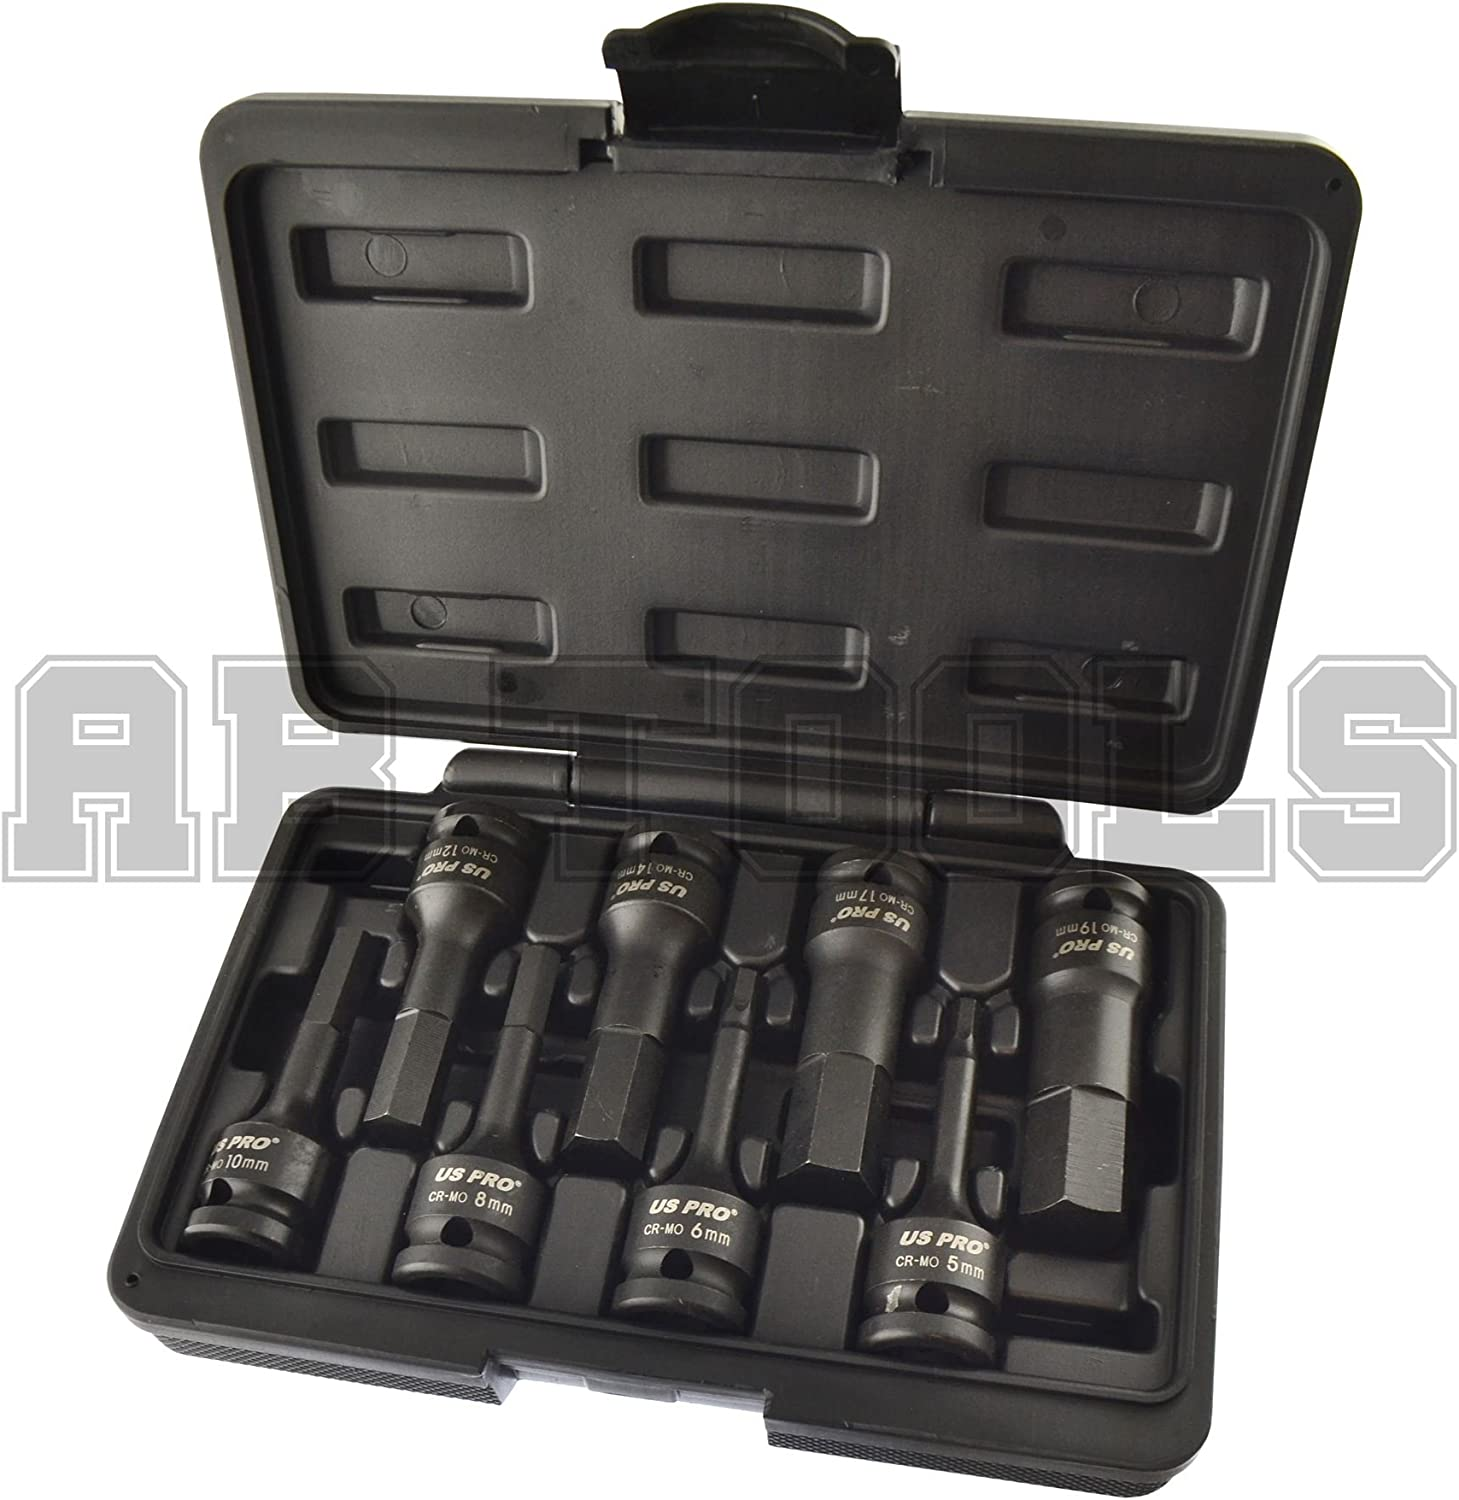 hex key bit impact socket set H5 H19 Metric Deep AT772 1//2 Drive Allen